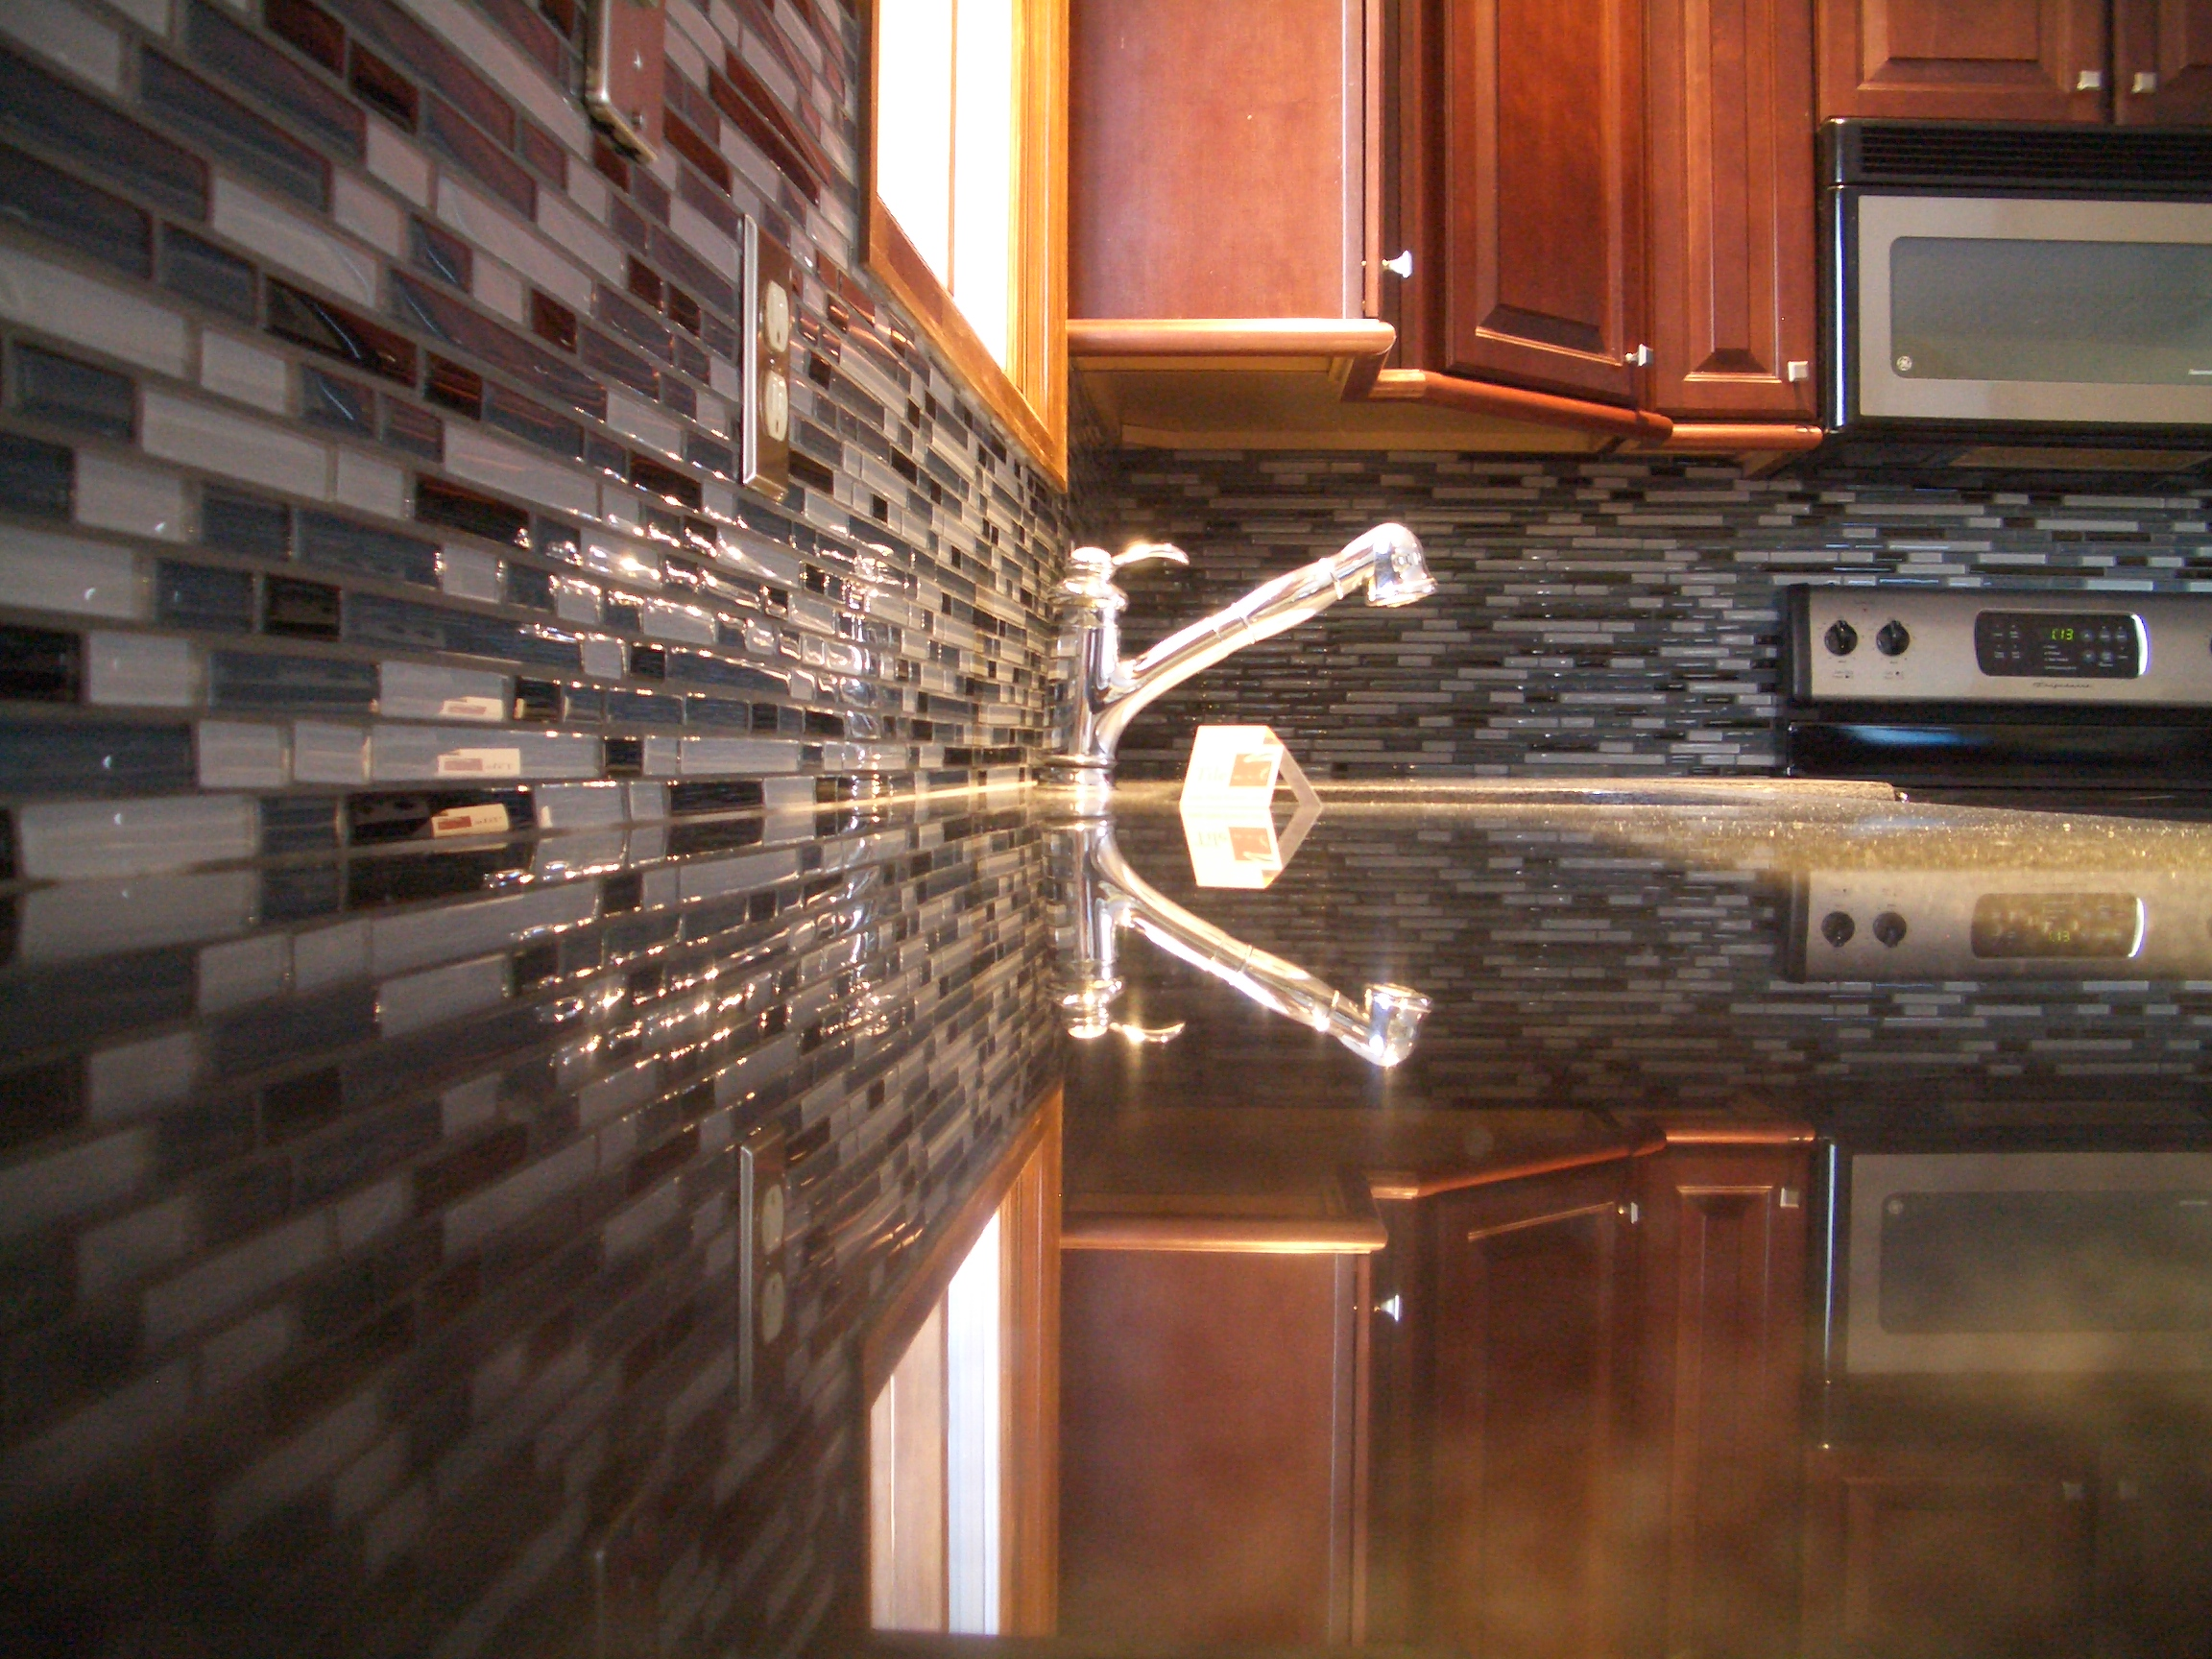 glass tile kitchen backsplash in fort collins glass tile backsplash kitchen Glass tile kitchen backsplash in Fort Collins